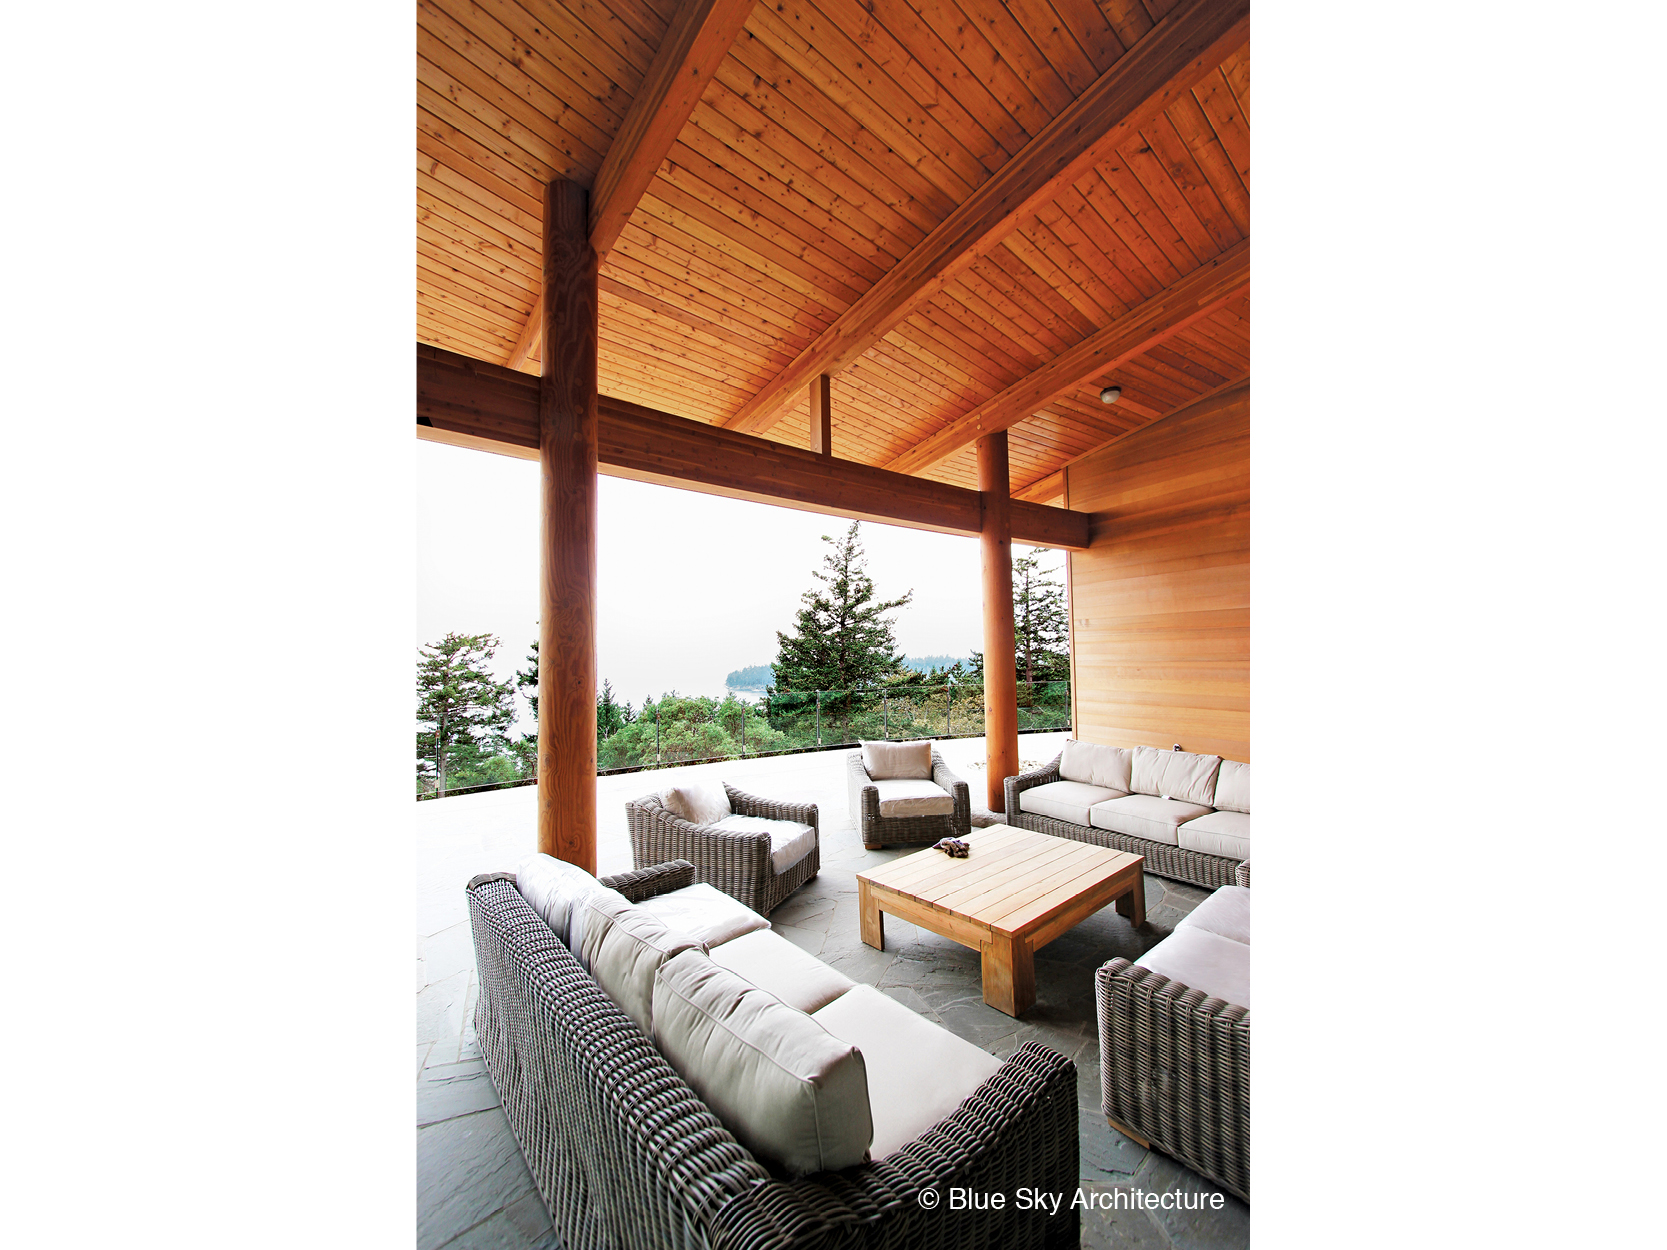 Outdoor patio living room in off-grid home